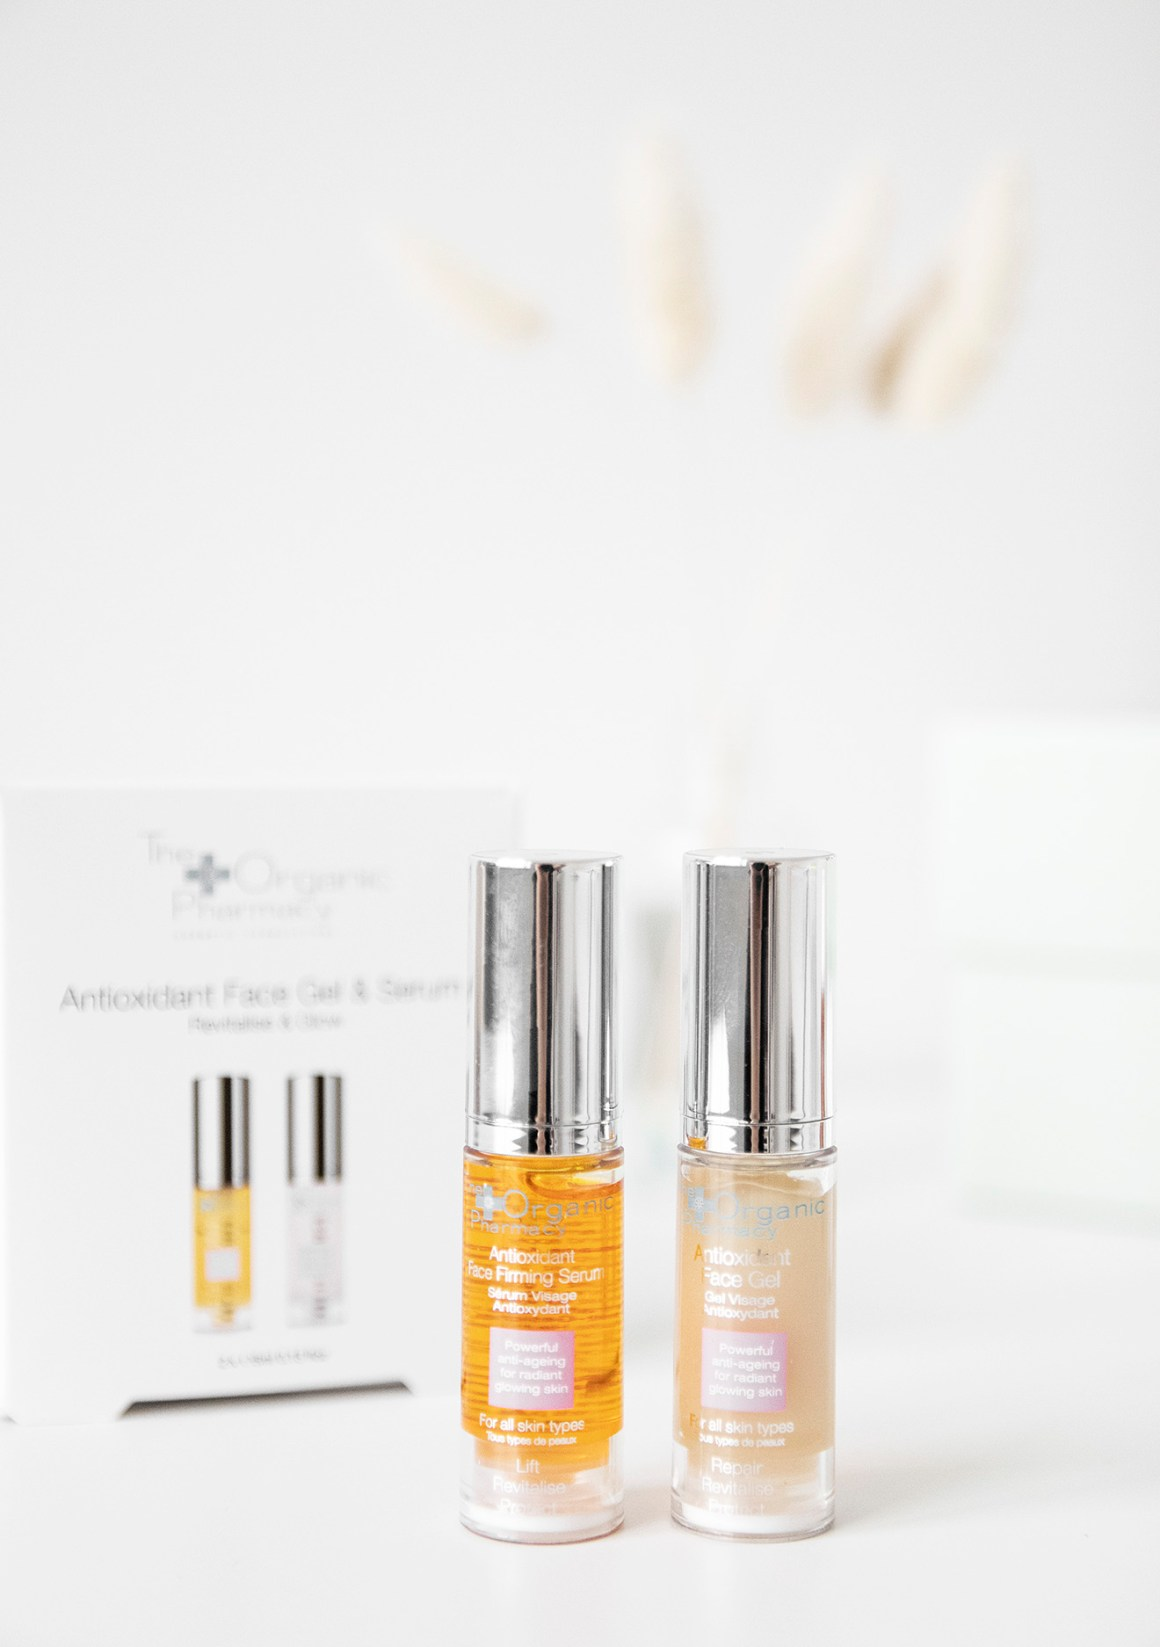 The Organic Pharmacy Antioxidant Face Gel and Serum Kit